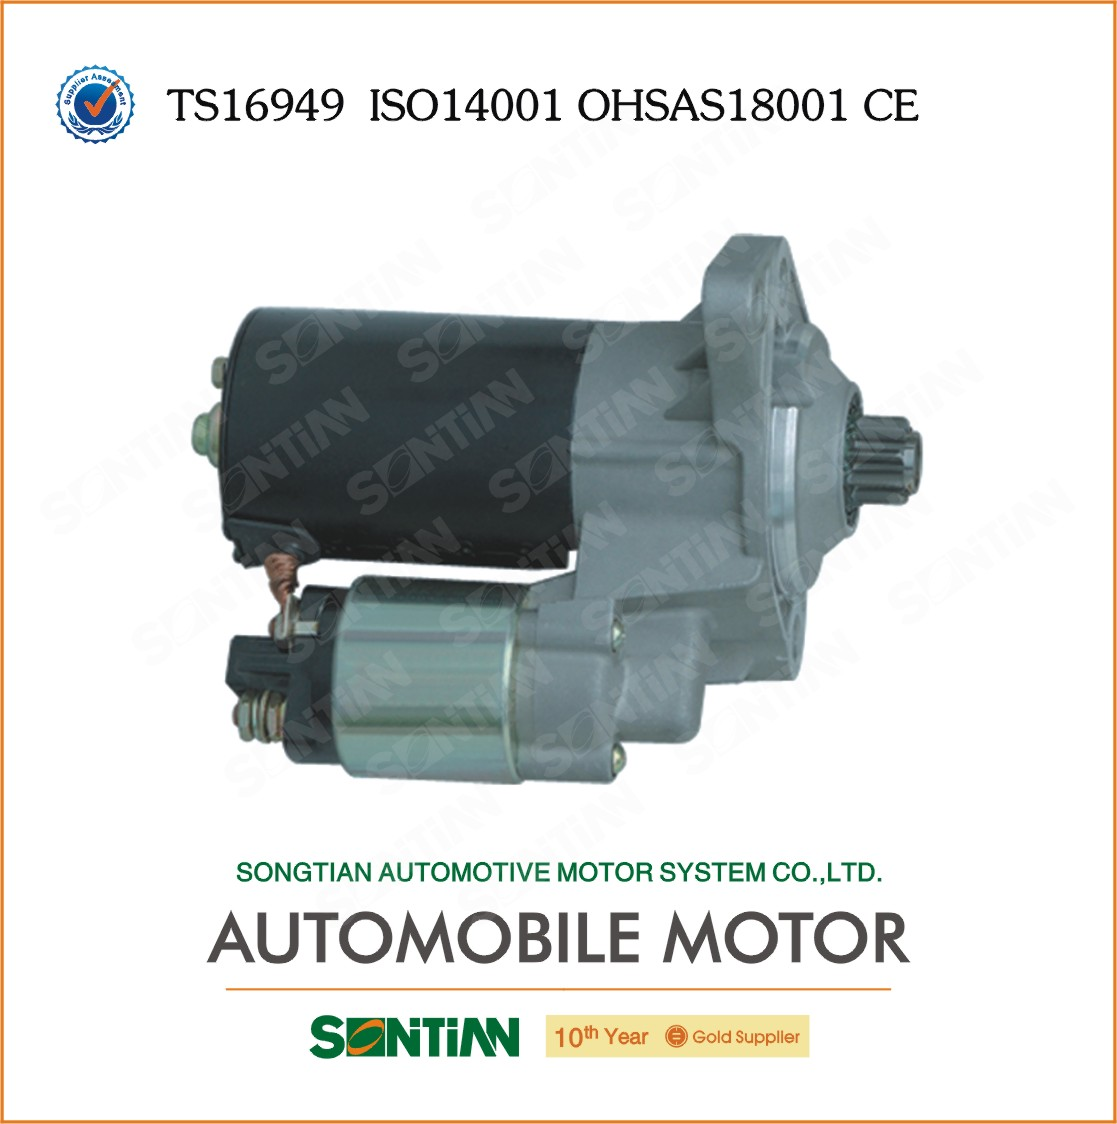 Bosch design New Beetle Starter Motor OEM NO 020 911 023F 12V from China Weznhou